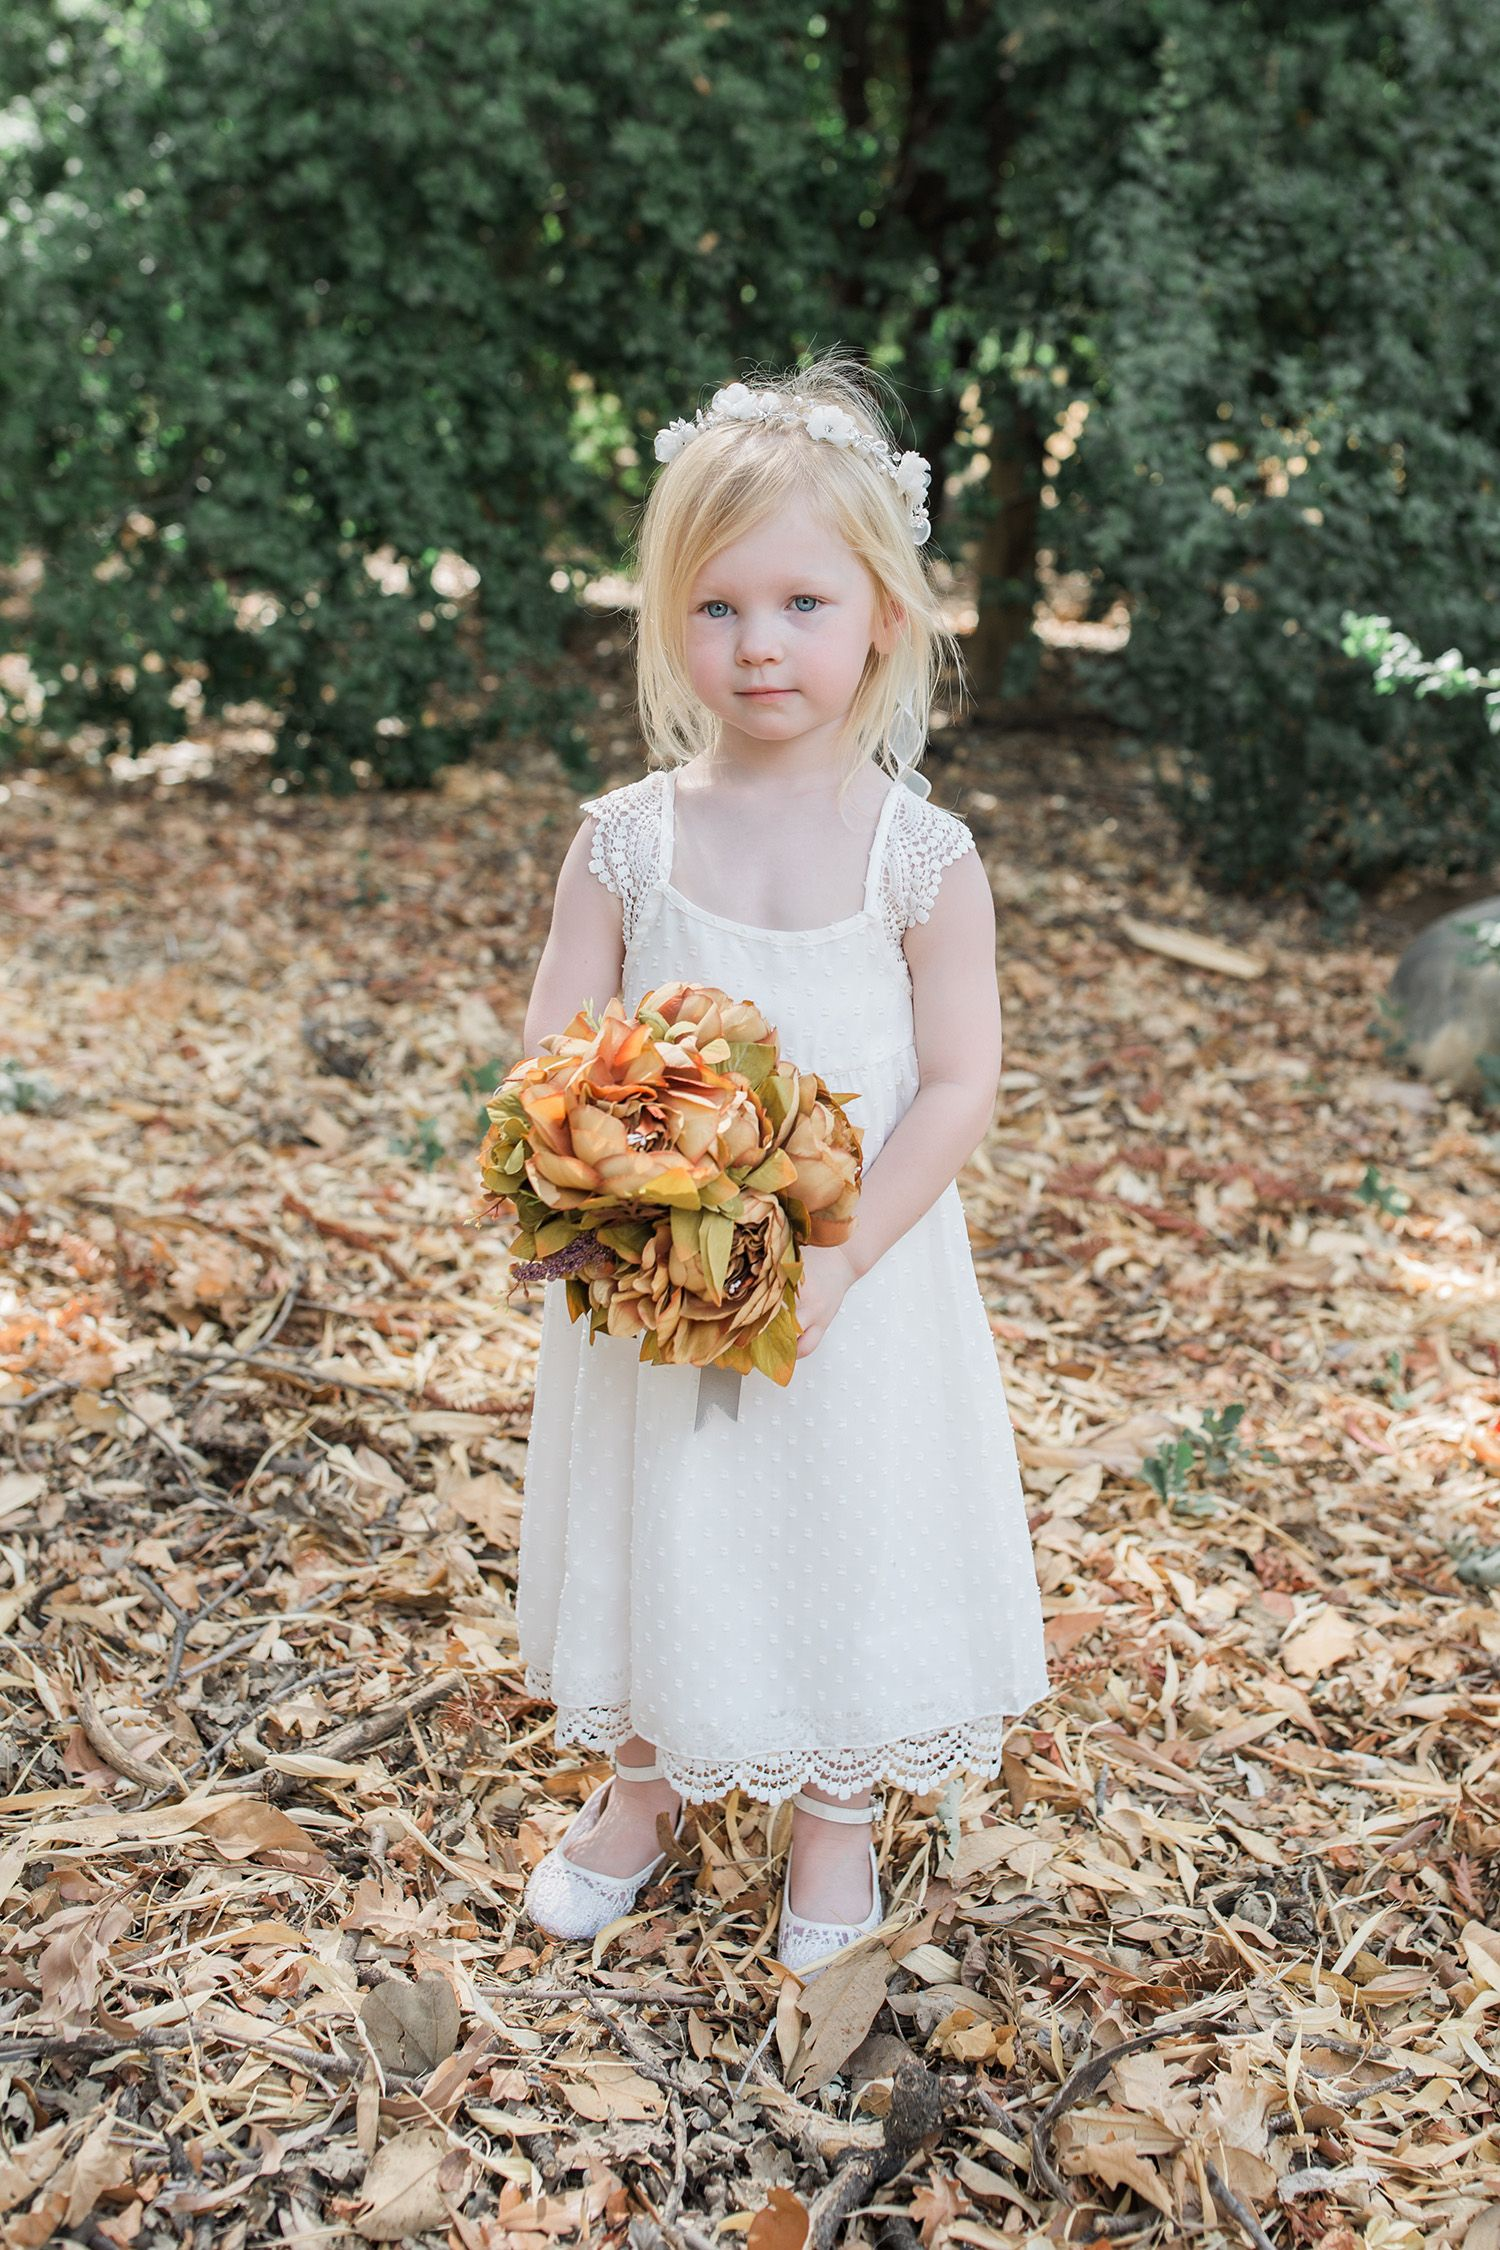 Fall wedding dresses flower girl dress and wedding guest ideas looking for wedding outfit ideas this bohemian flower girl dress is just adorable lace flower girl dress from davids bridal mightylinksfo